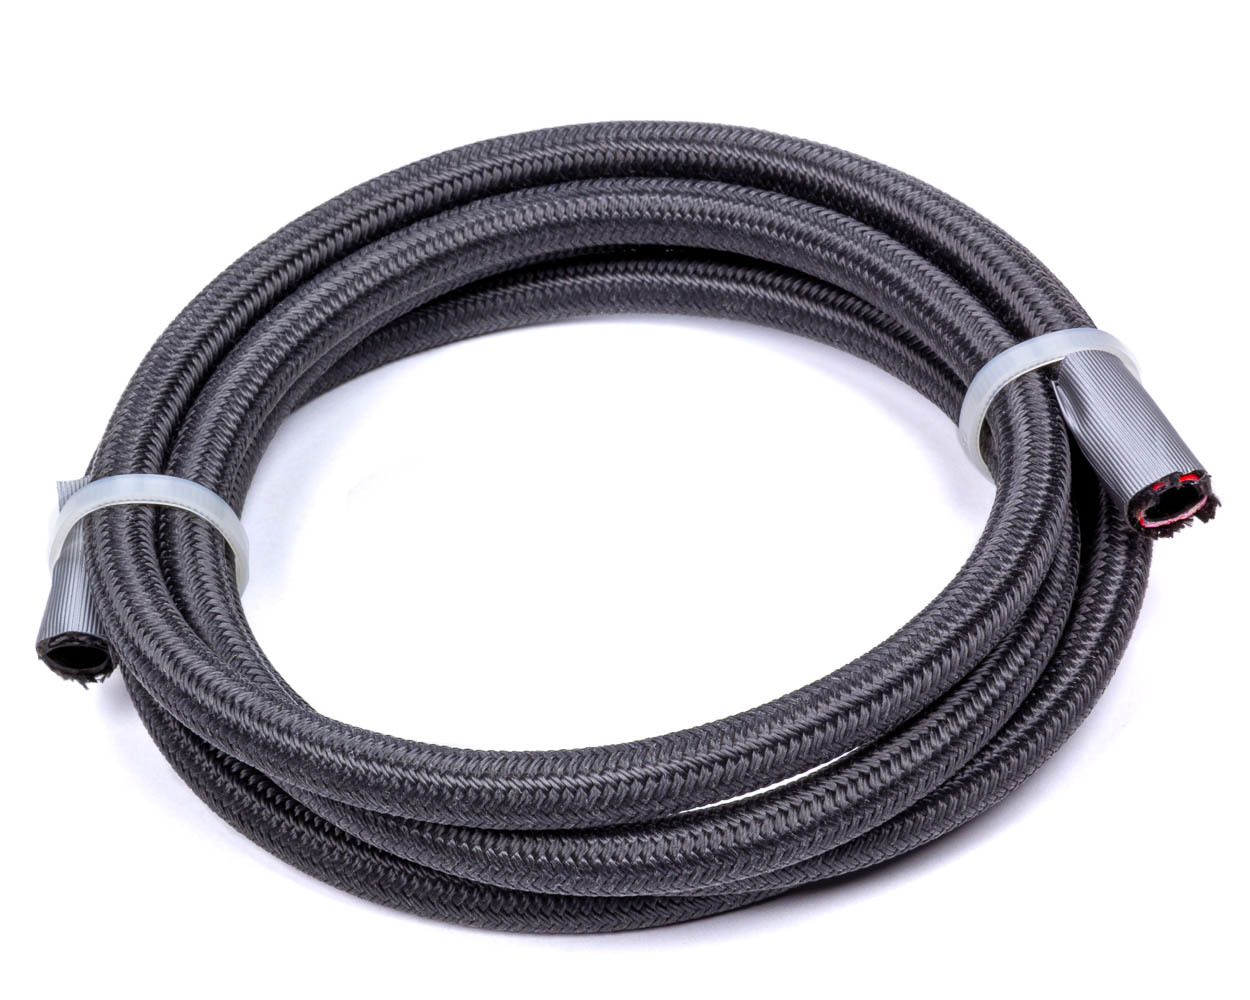 Fragola 2701004 Hose, 4 AN, 10 ft, Braided Fire Retardant Fabric, PTFE, Black, Each